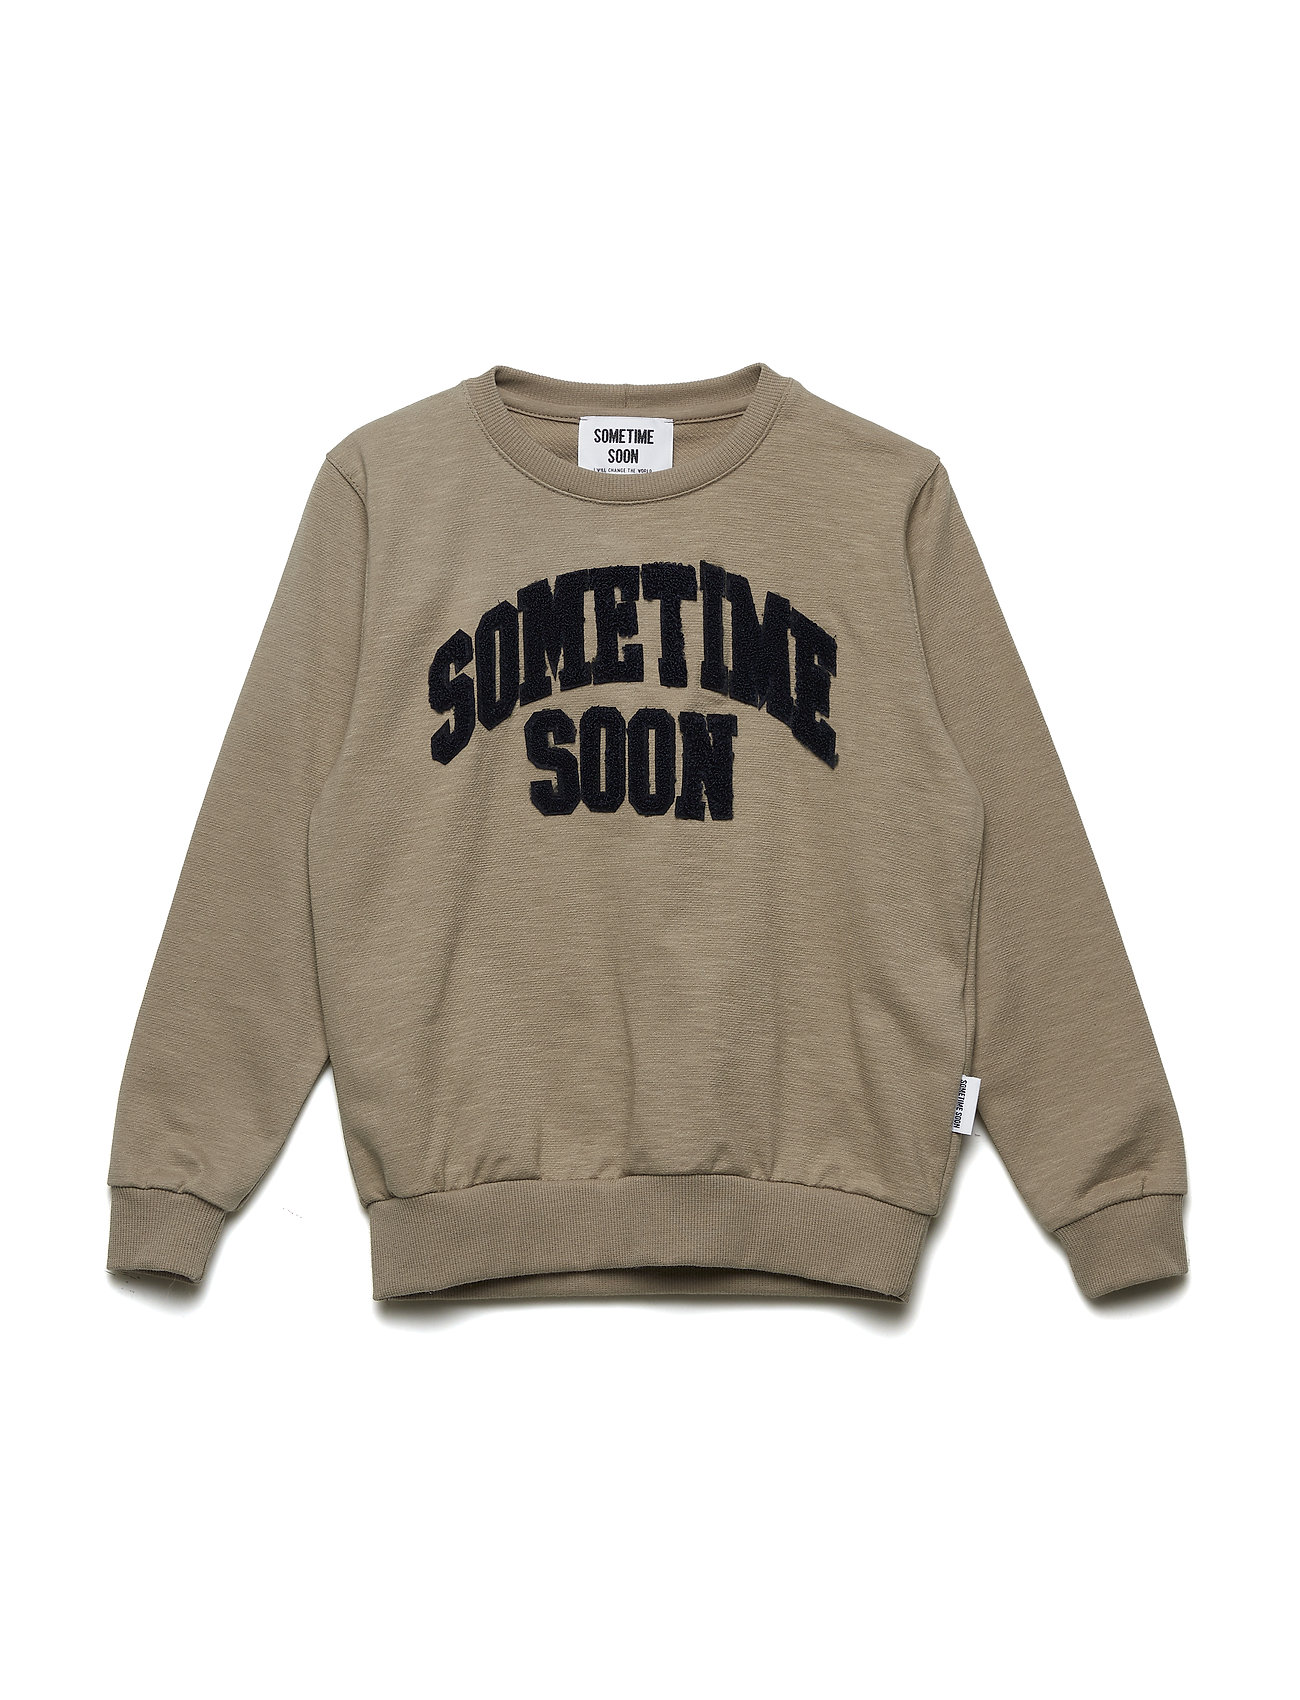 Sometime Soon College - BROWN